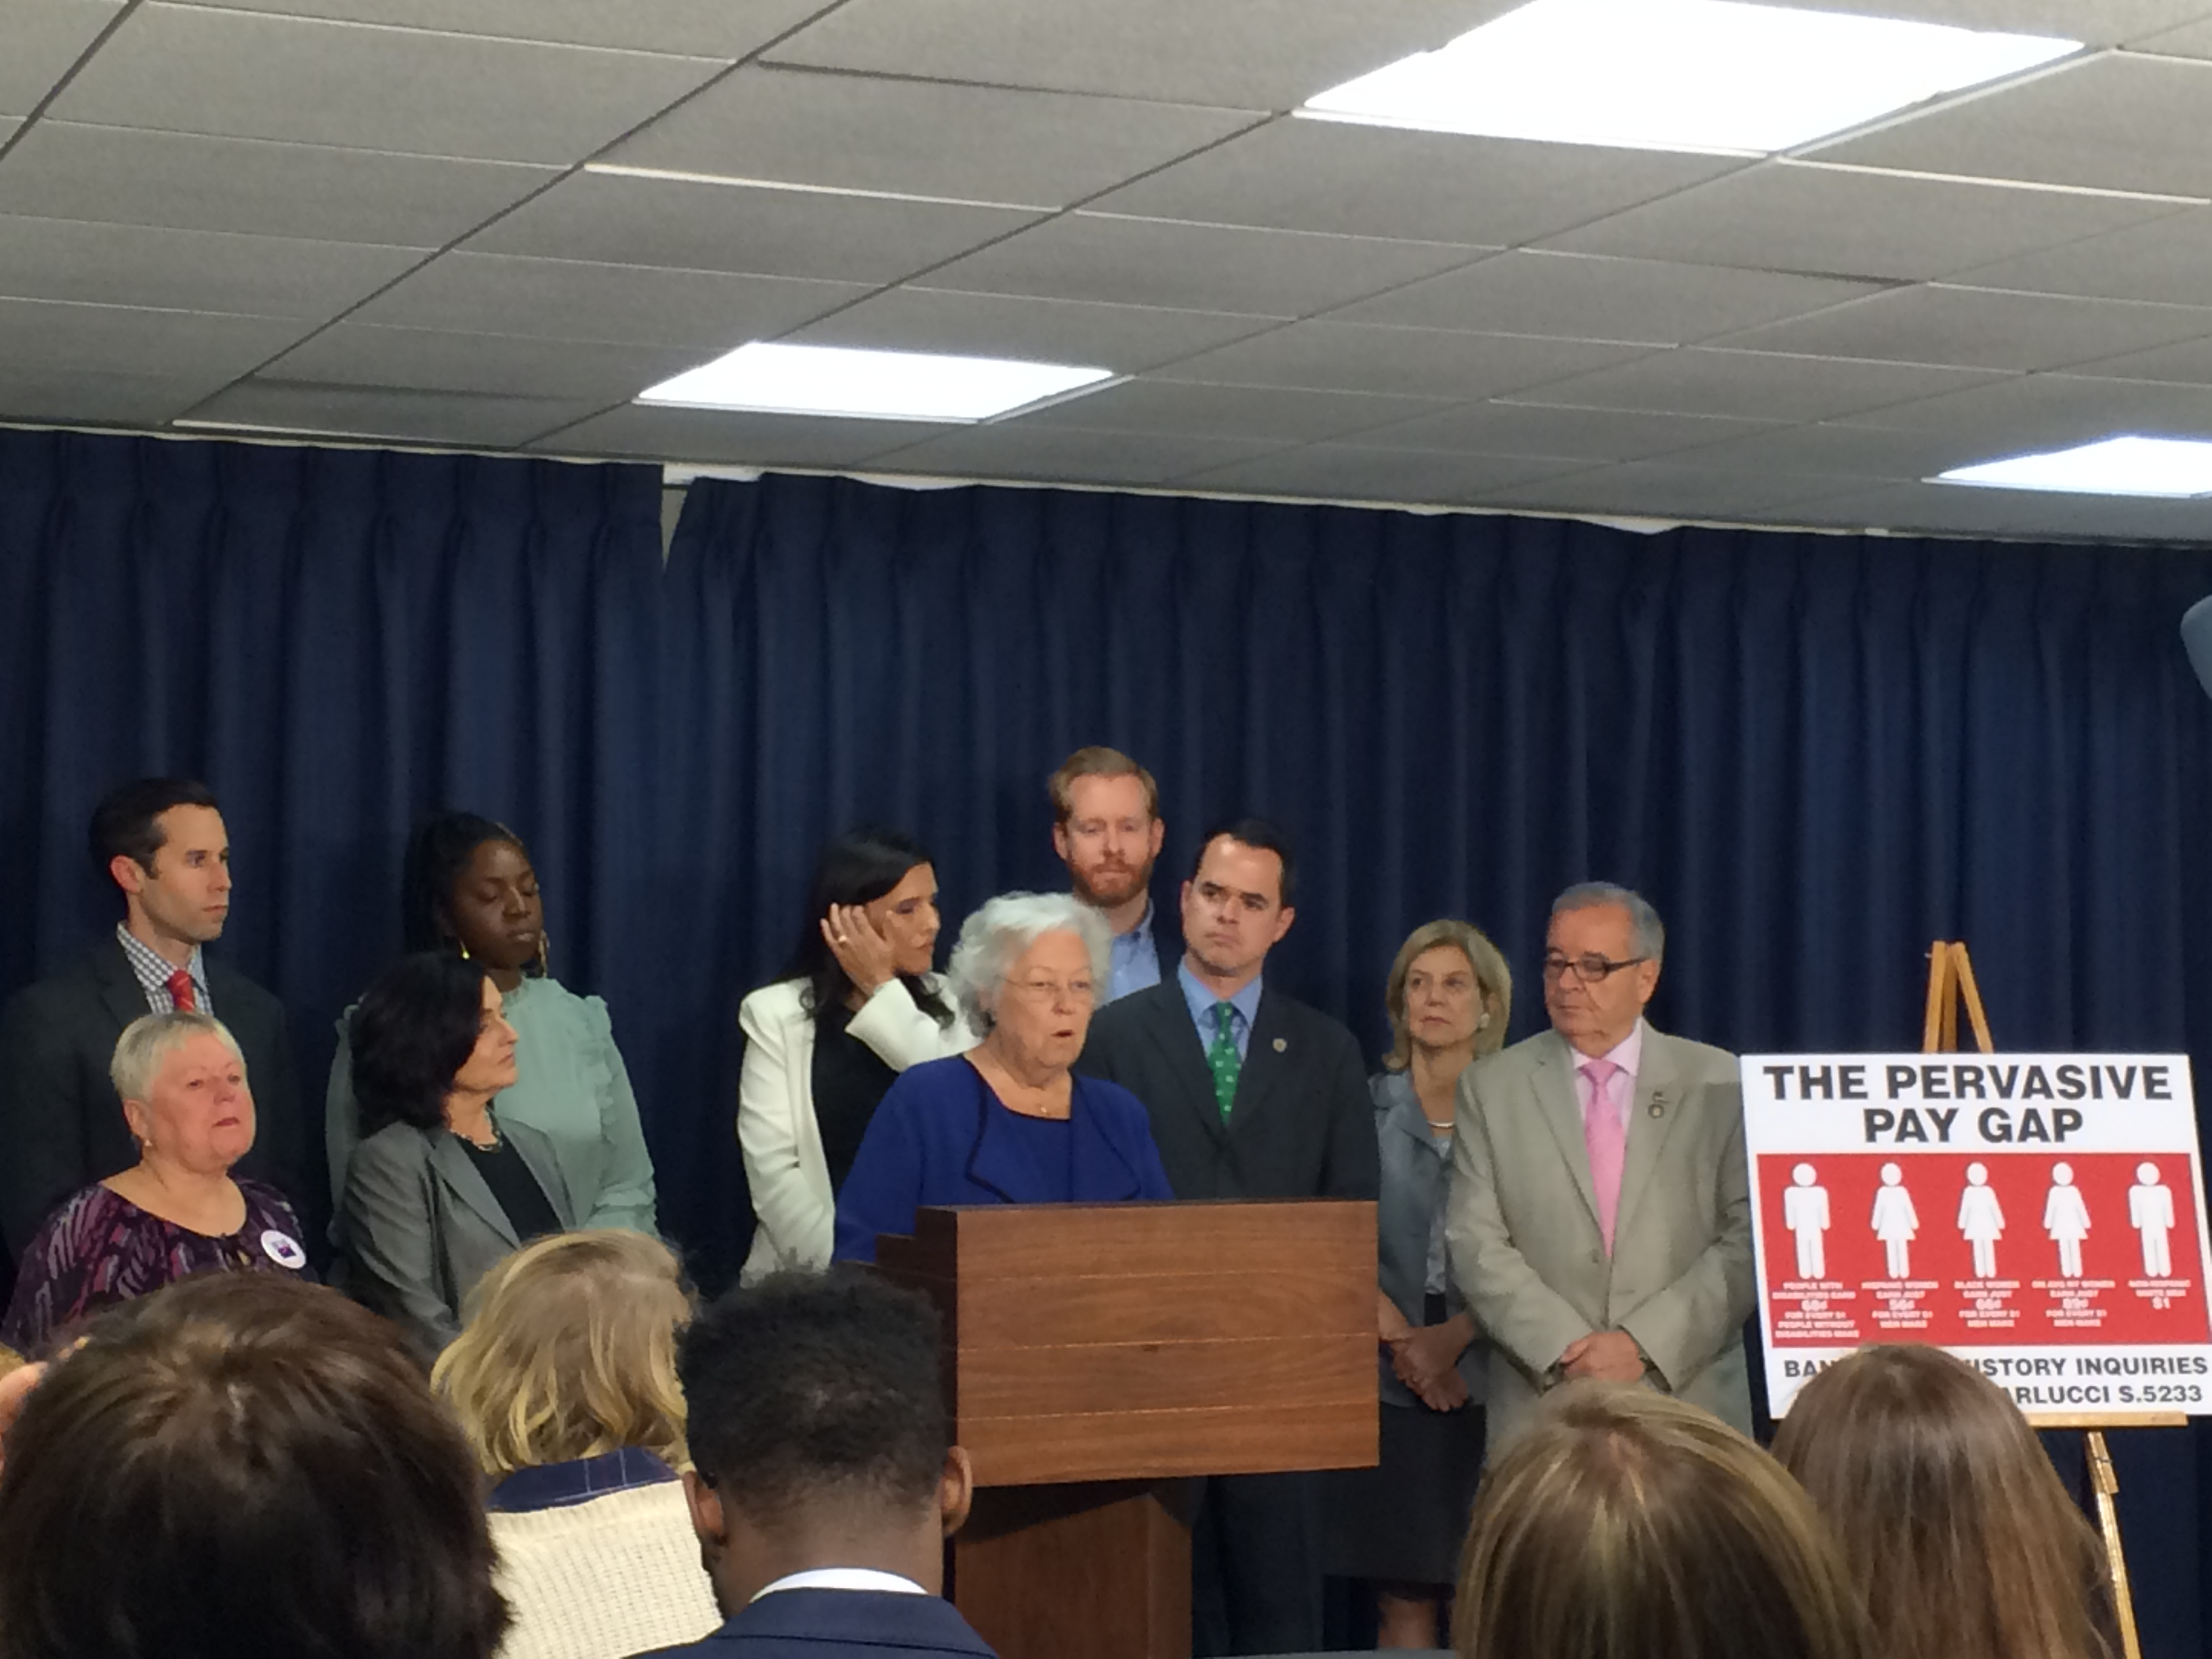 At a press conference, Sandy spoke to promote her bill to ban the question of salary history.